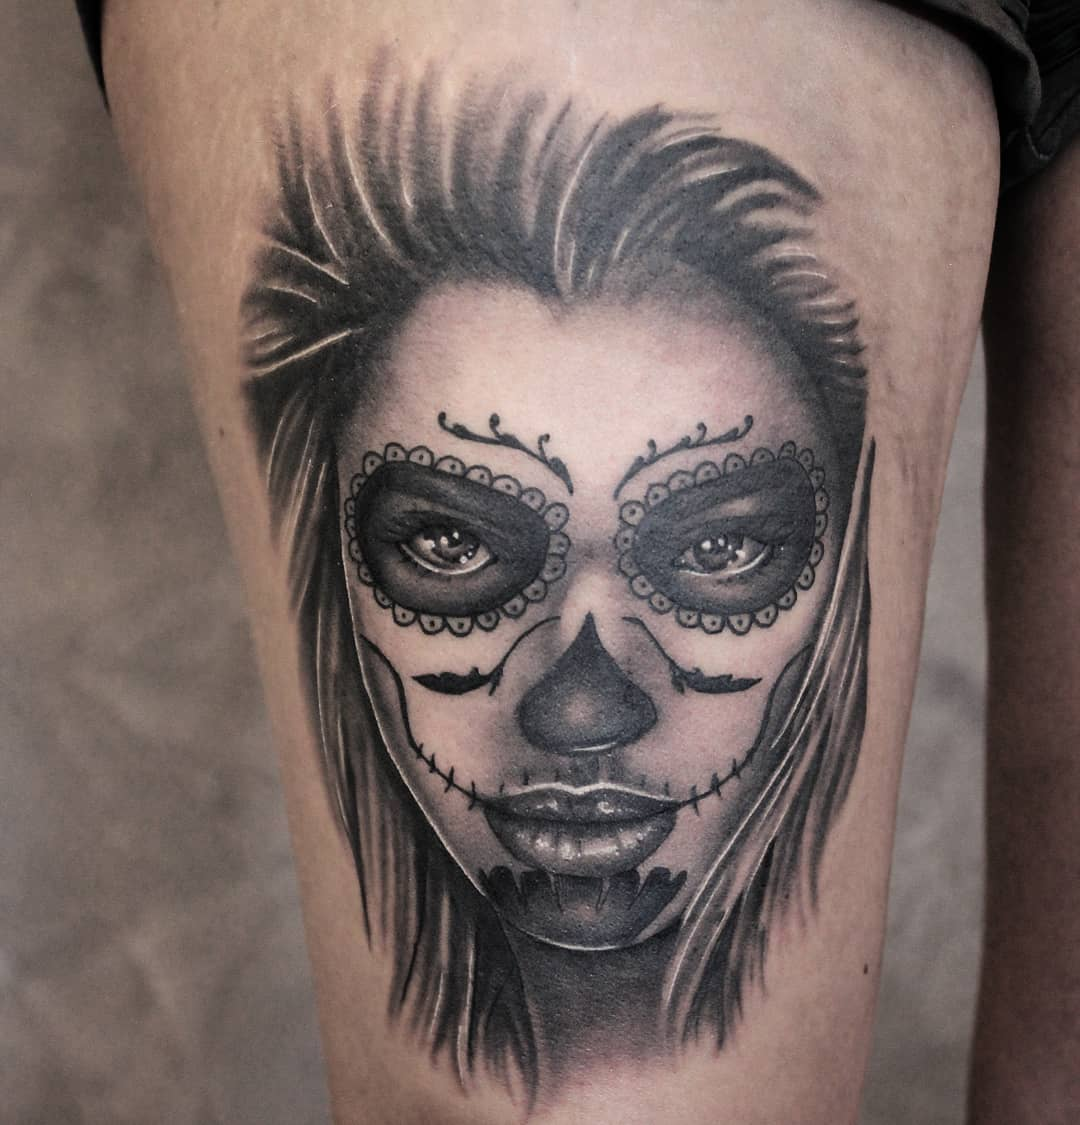 Fresh la Catrina, thx again! #germantattooers #tattooworkers #tattoo #tattoolife